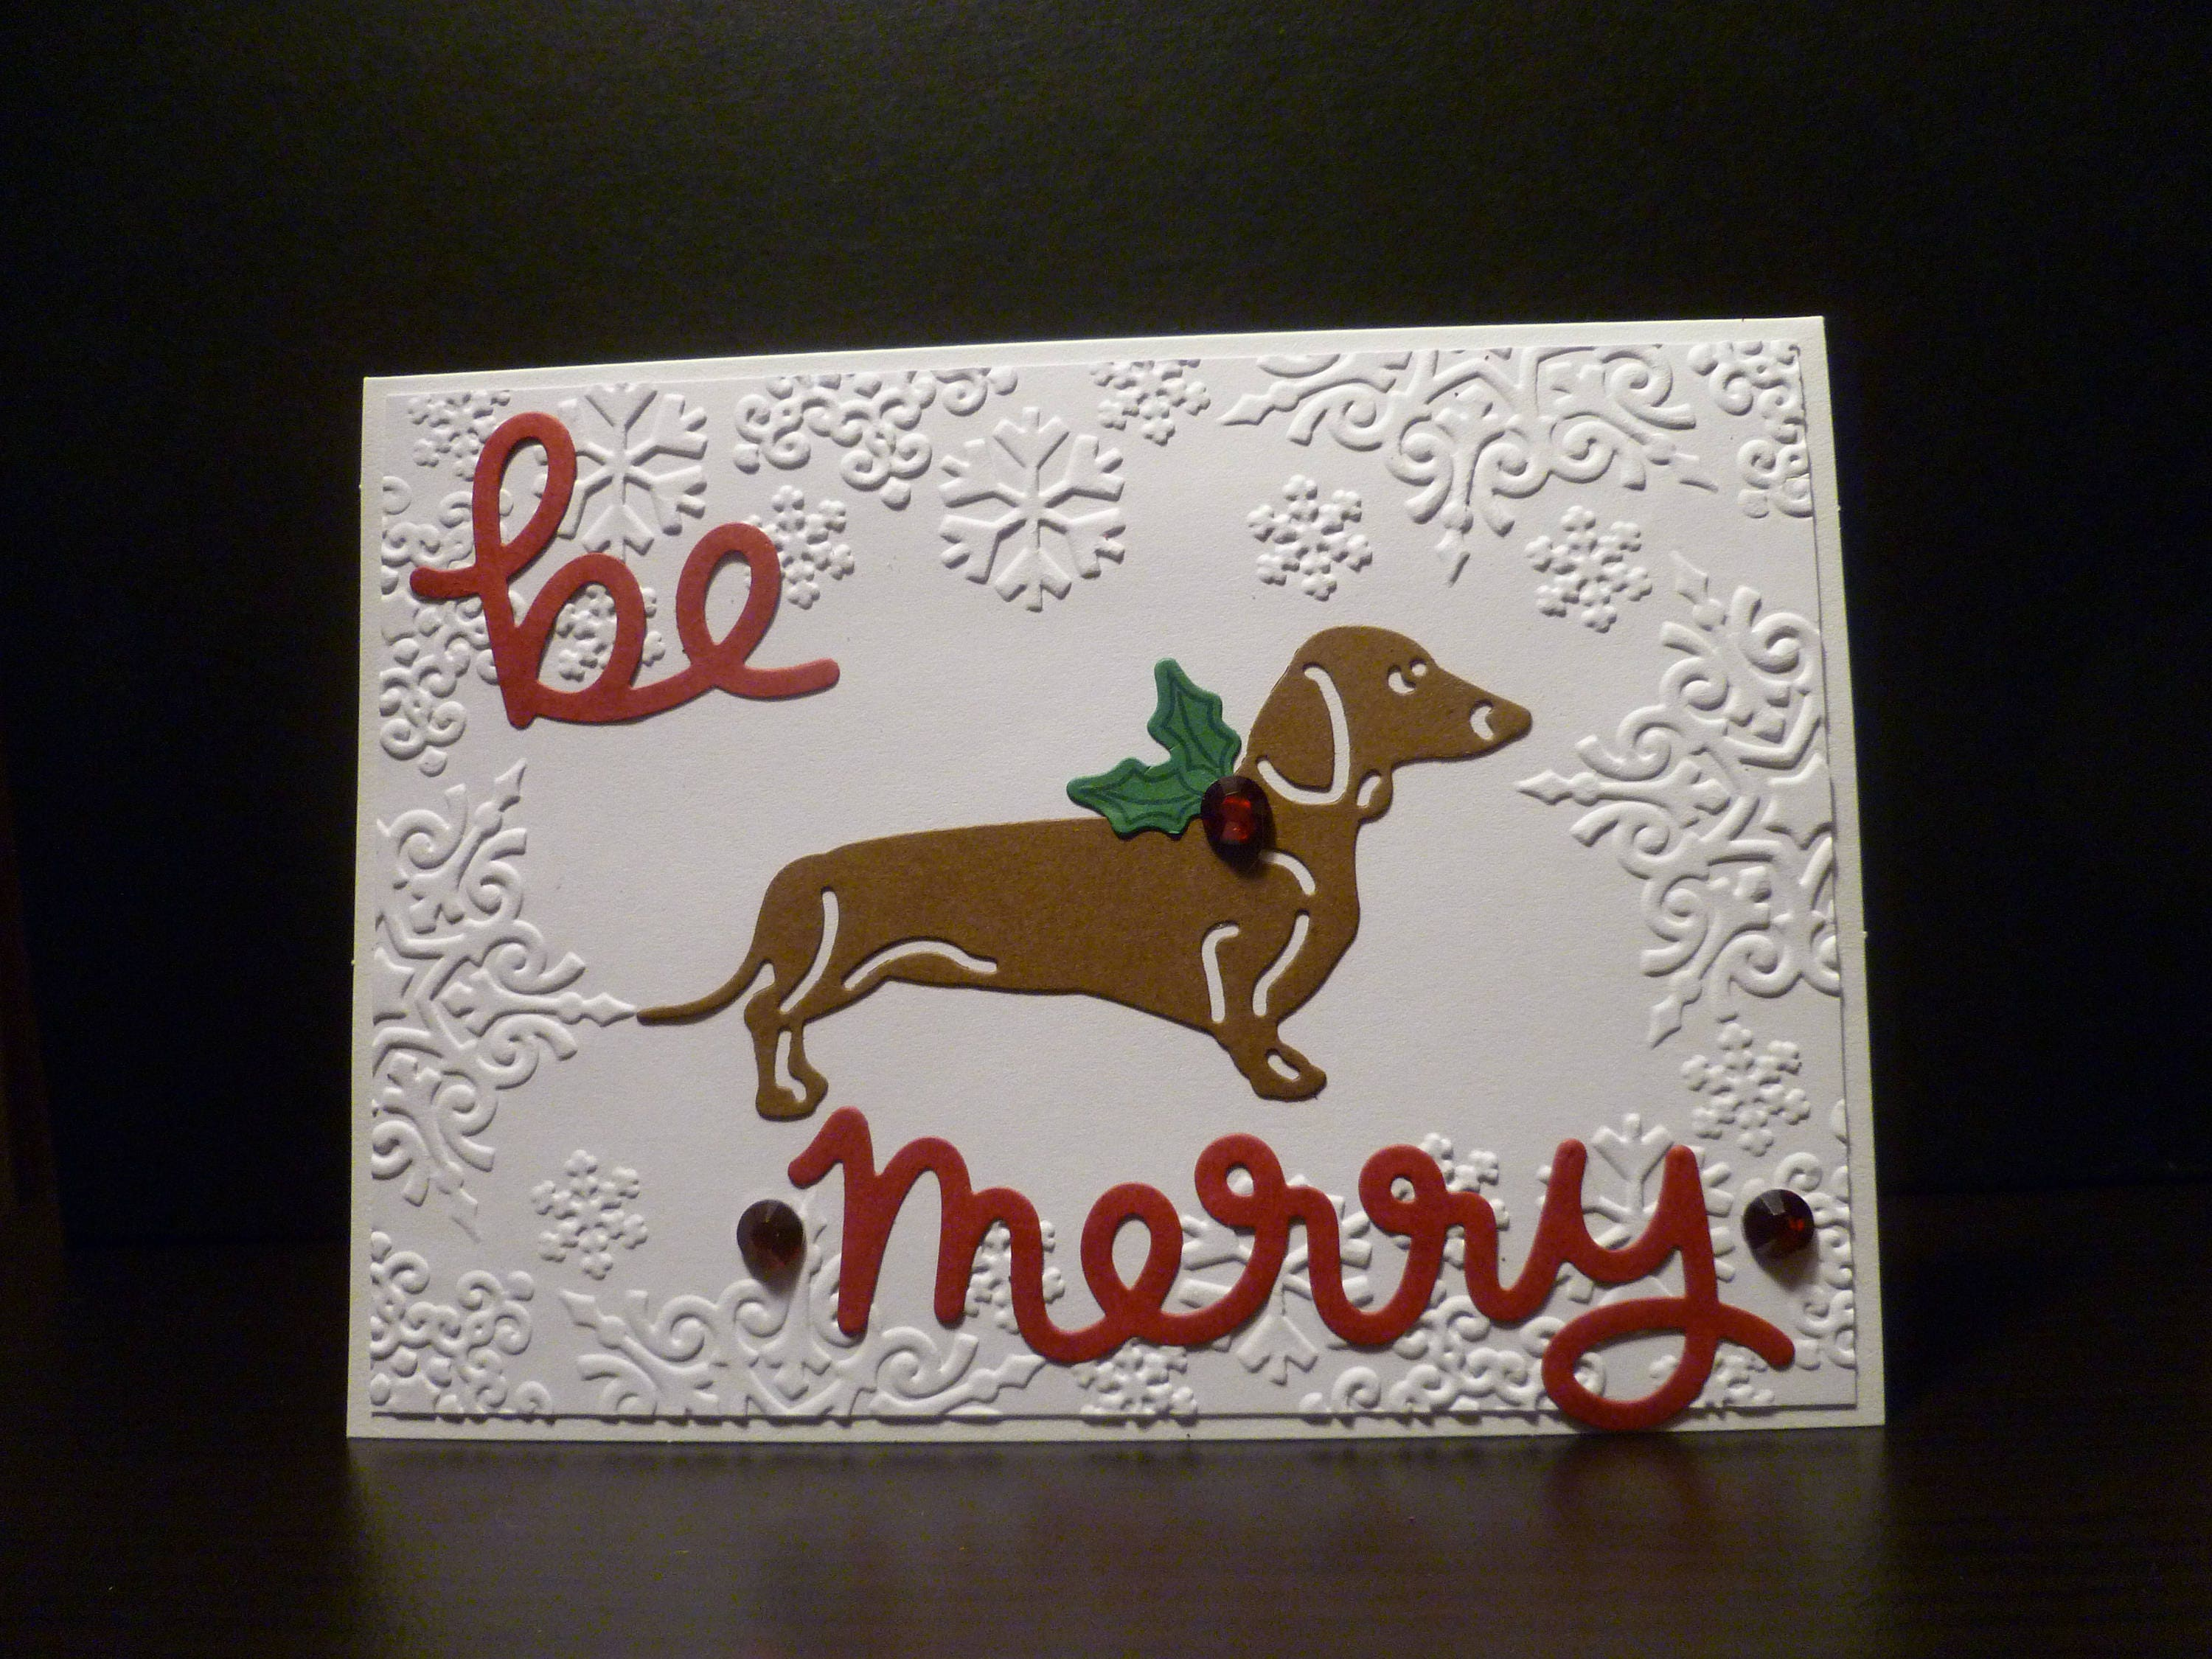 Handmade dachshund christmas card be merry brown dachshund dog handmade dachshund christmas card be merry brown dachshund dog christmas pet christmas kristyandbryce Image collections